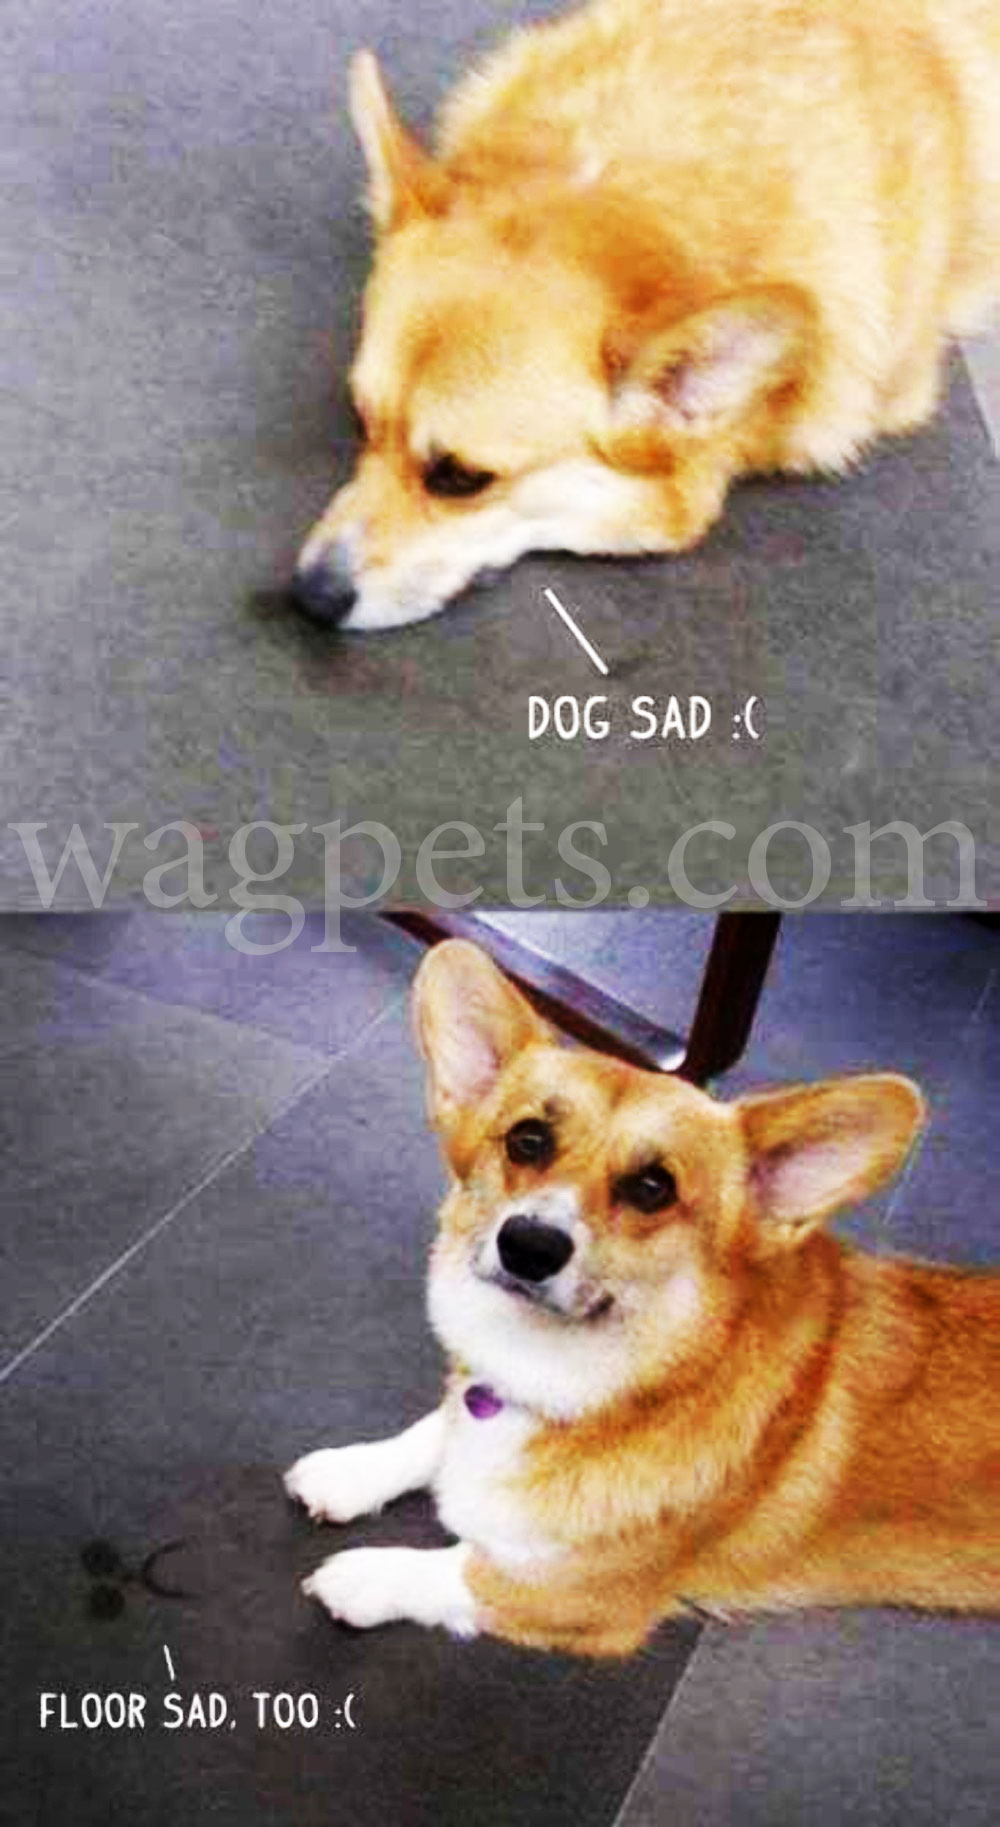 Dog sad:( Floor sad too:(